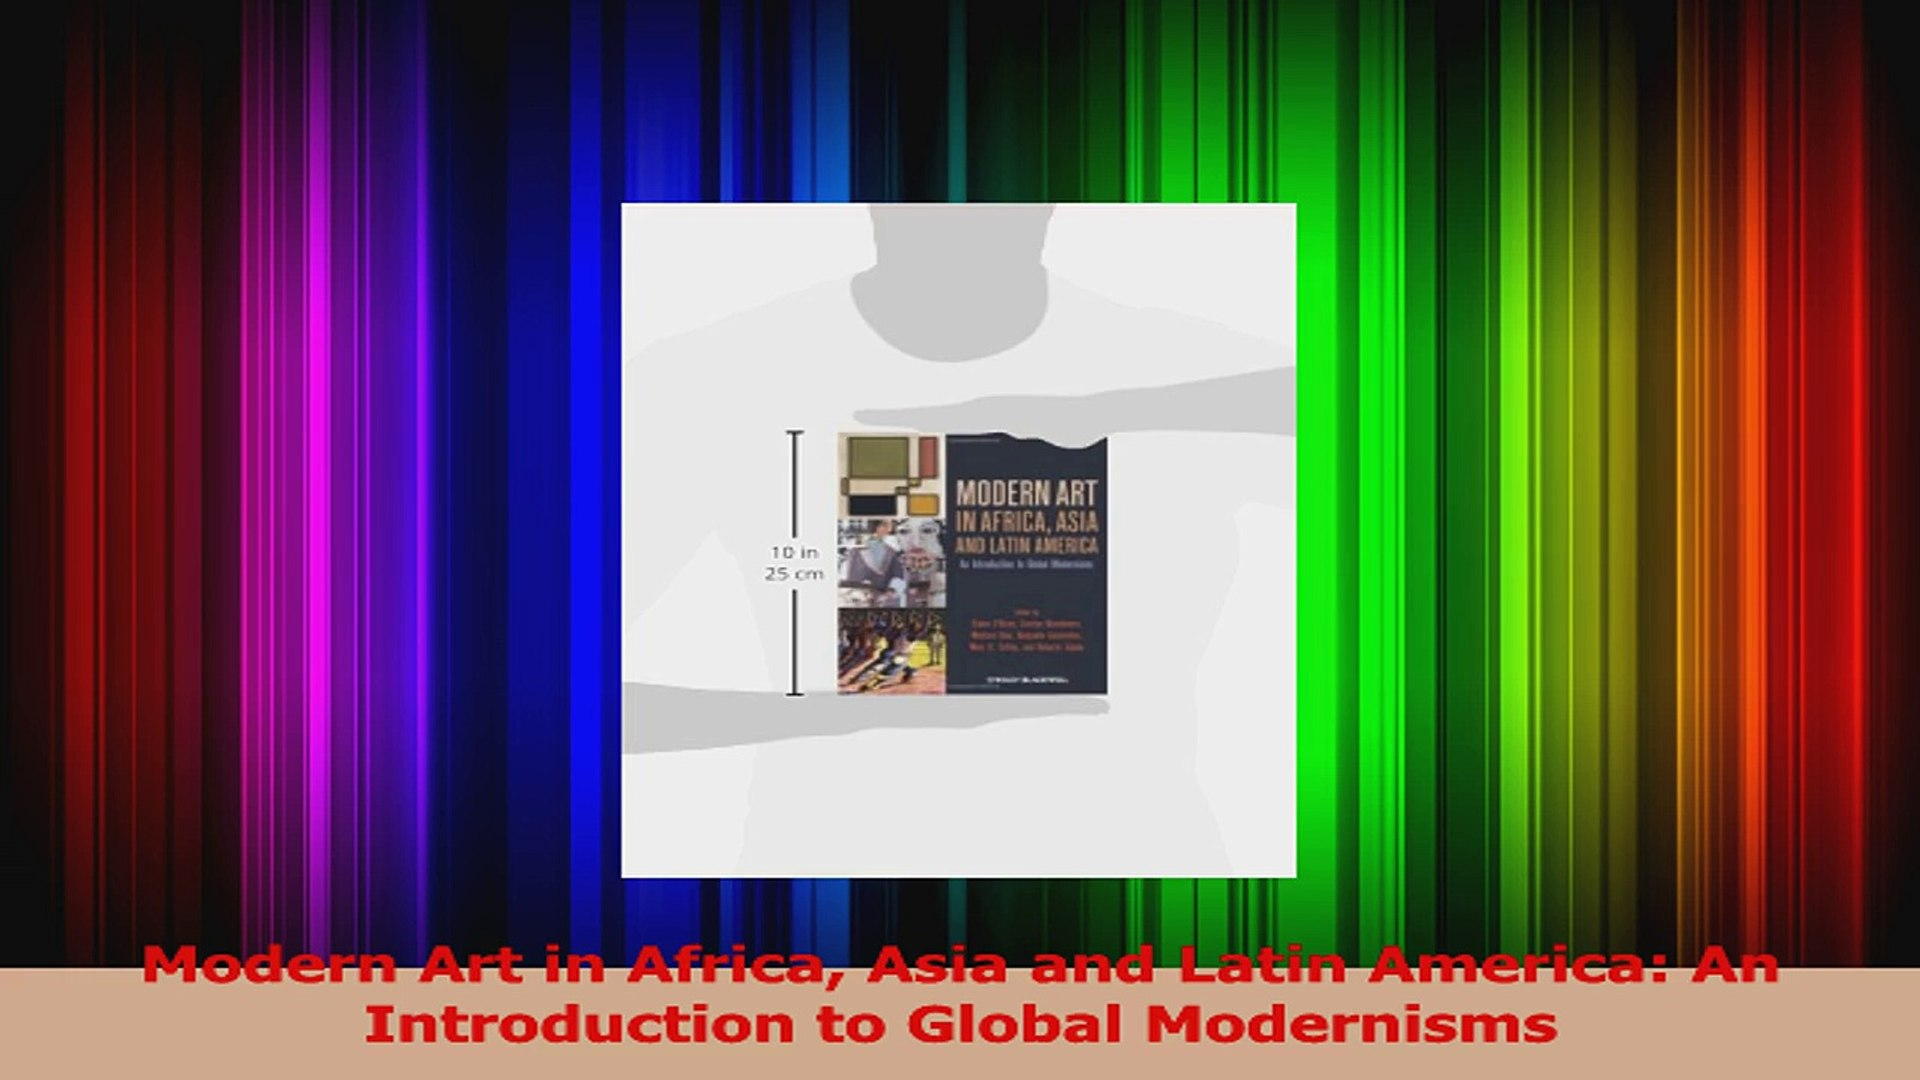 Pdf Download Modern Art In Africa Asia And Latin America An Introduction To Global Modernisms Read Online